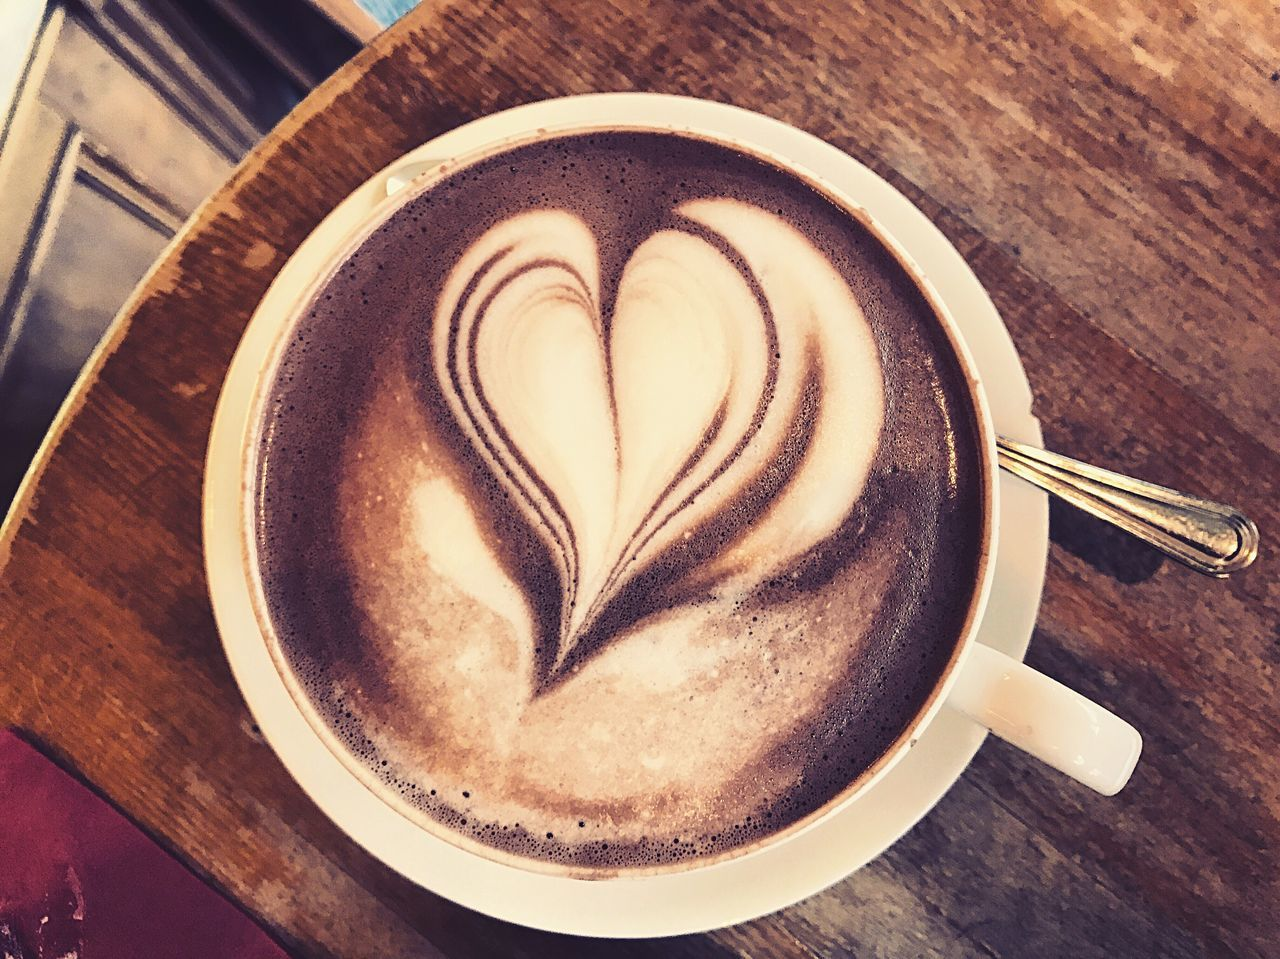 Coffee - Drink Coffee Cup Heart Shape Cappuccino Table Froth Art Love High Angle View Drink Food And Drink Indoors  Latte Close-up Frothy Drink Refreshment No People Brown EyeEmNewHere Enjoying Life Photography Hello World Munich Travel